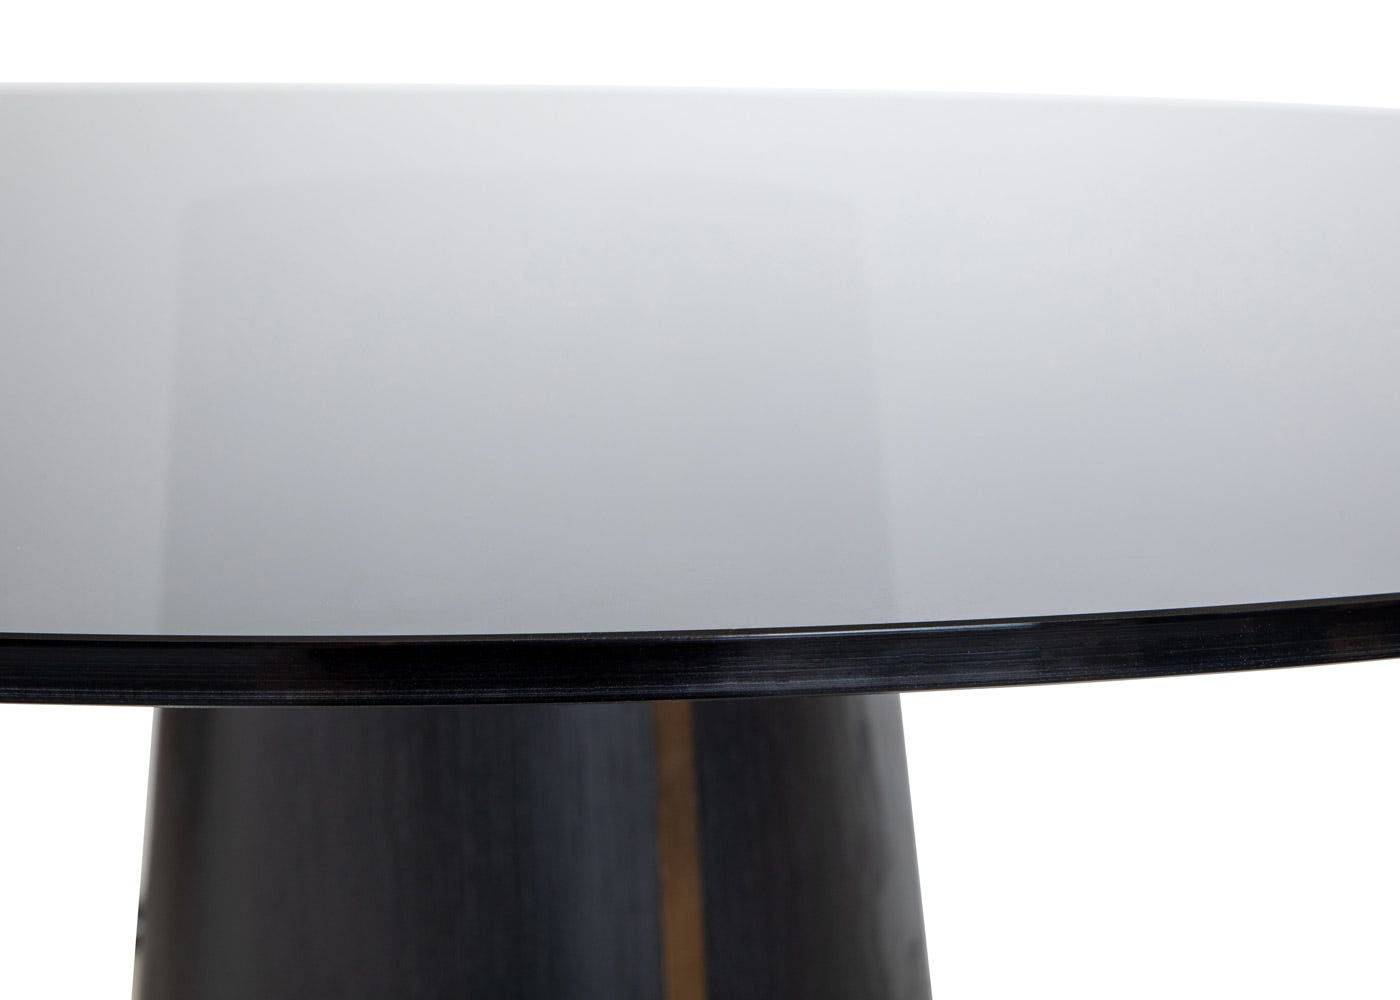 As shown: Smoked glass top.